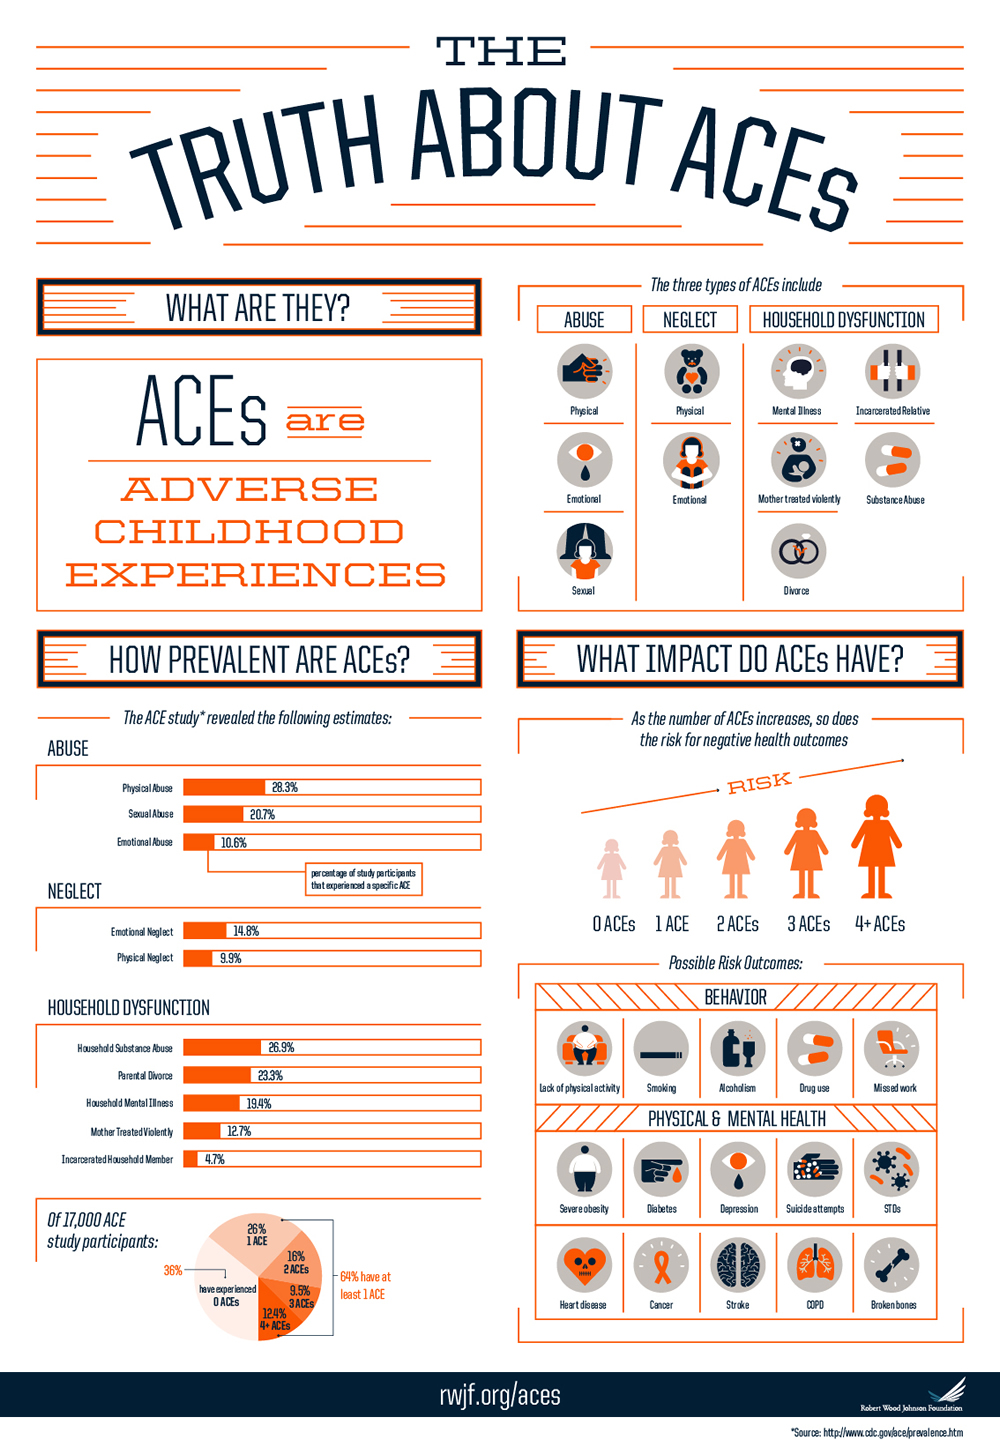 The Truth About ACEs Infographic • Robert Wood Johnson Foundation